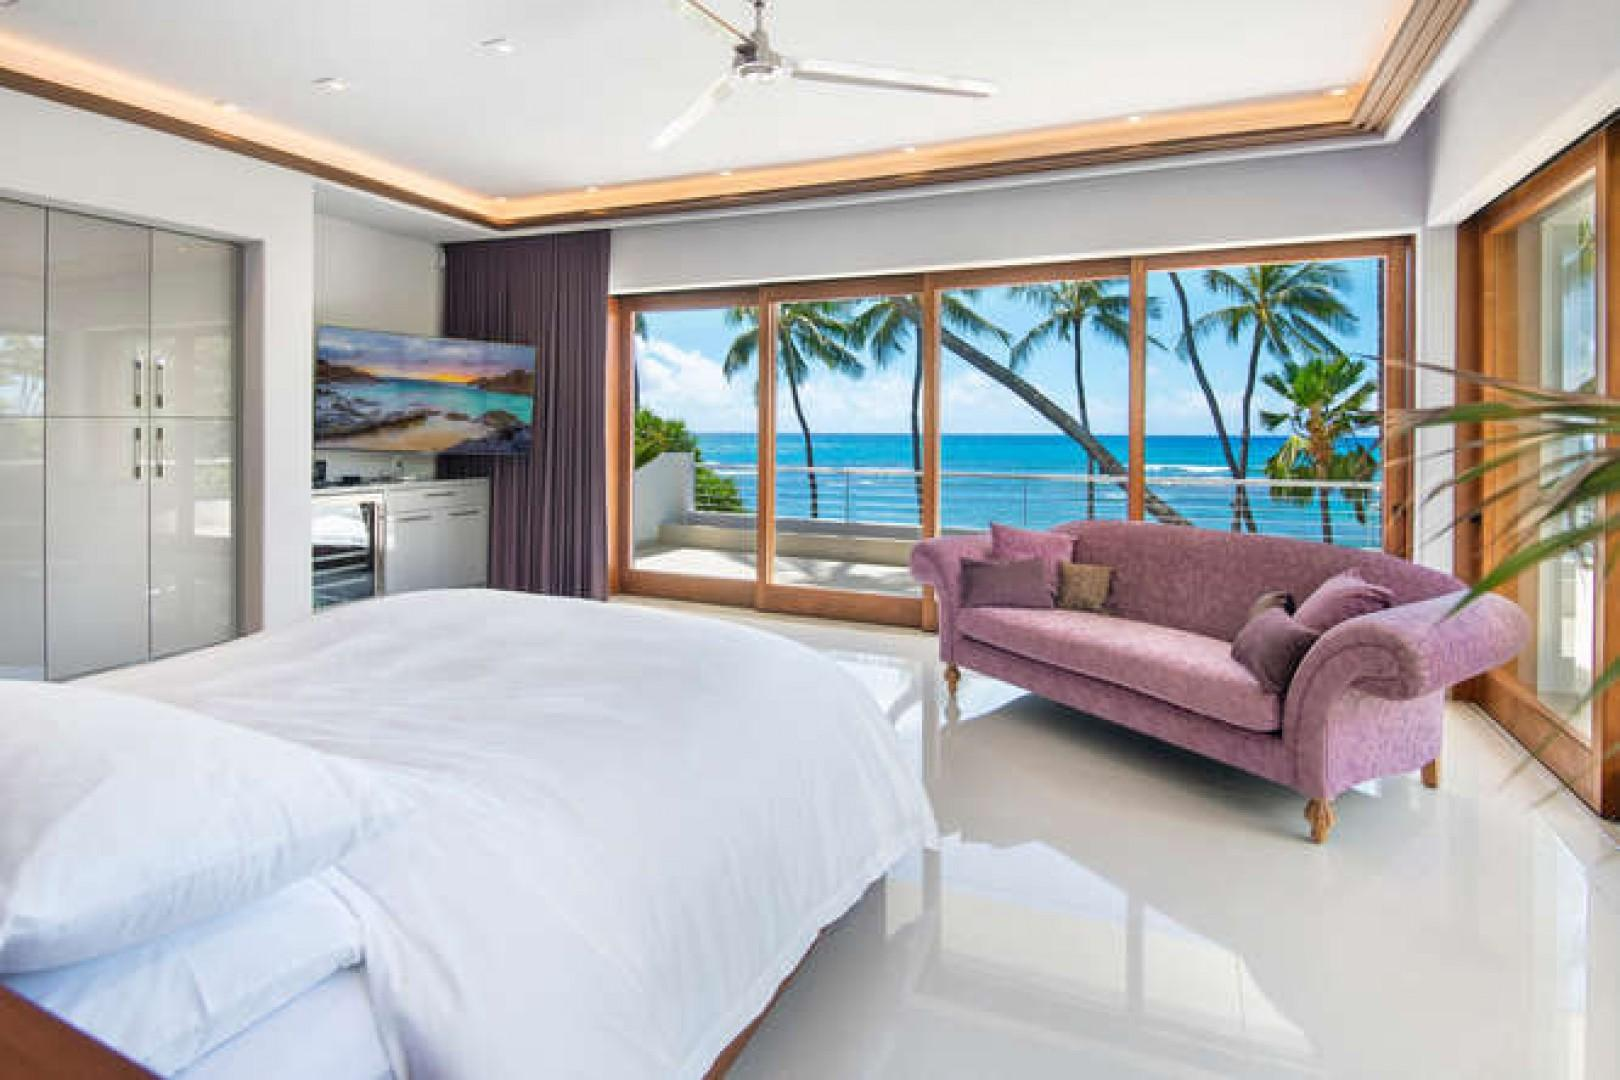 Master - Large master bedroom with amazing ocean views!